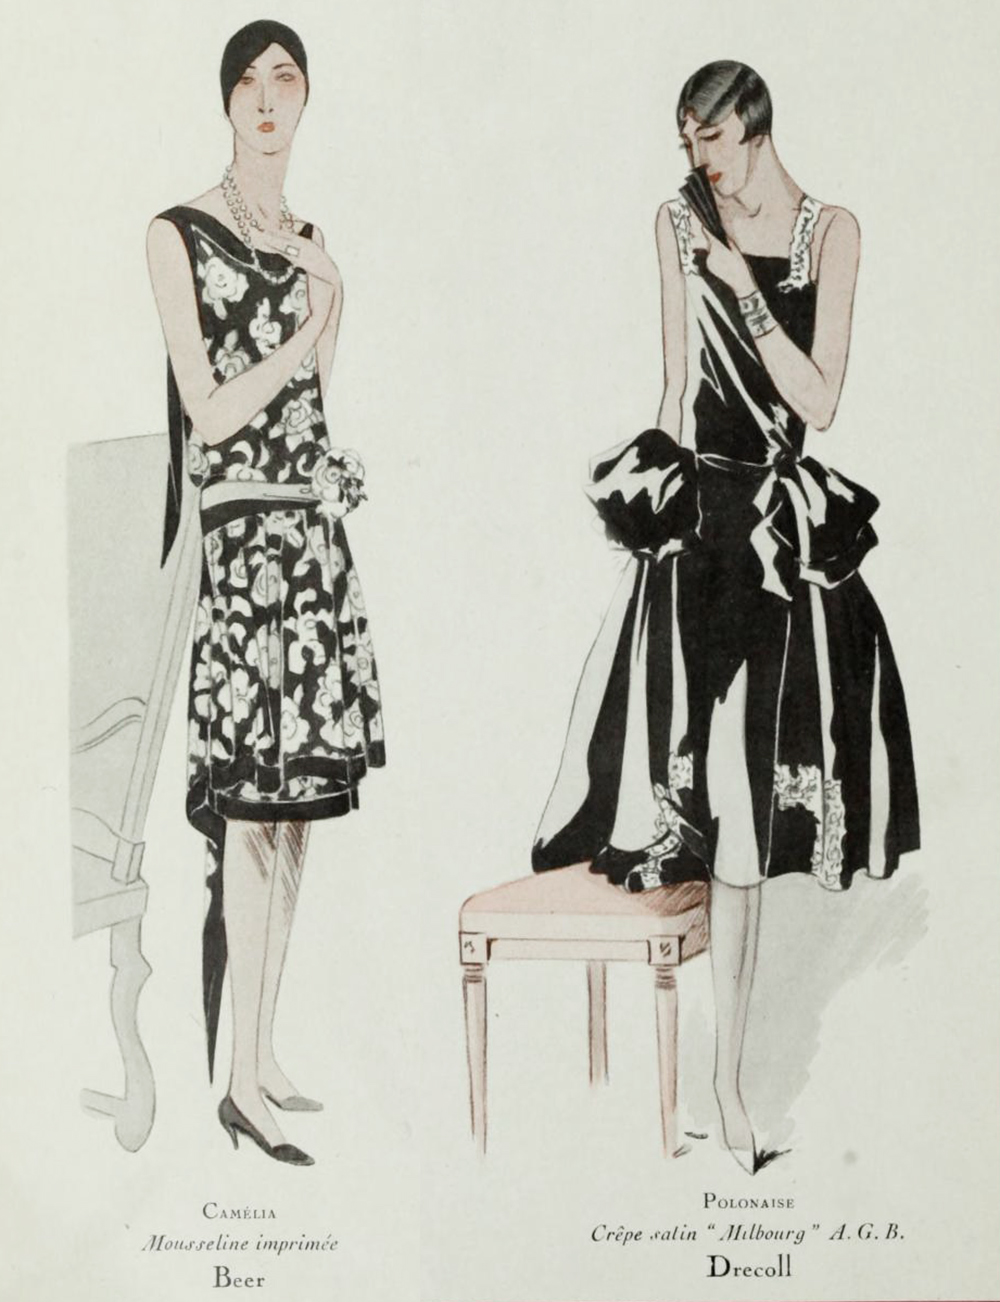 1920s Fashion - Modes from Paris 1928 - Drecoll and Beer